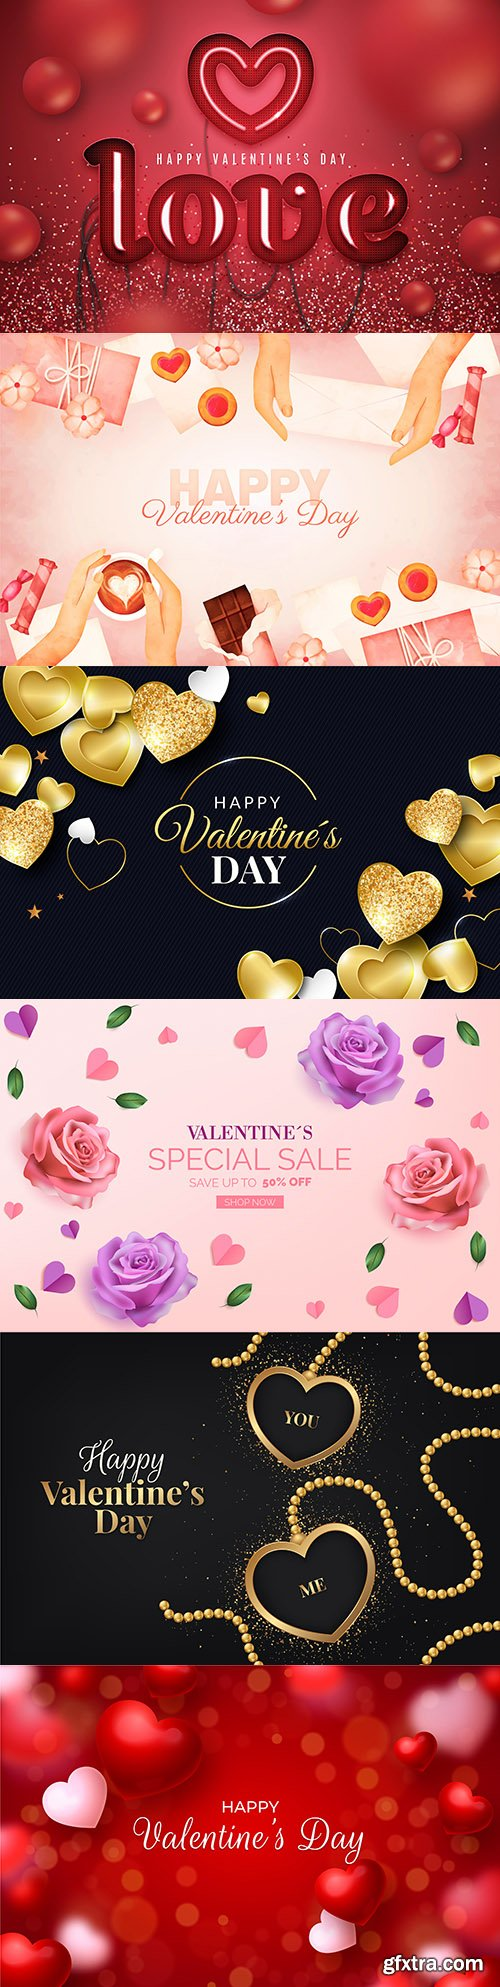 Valentine's Day sale and background with heart of gold 3